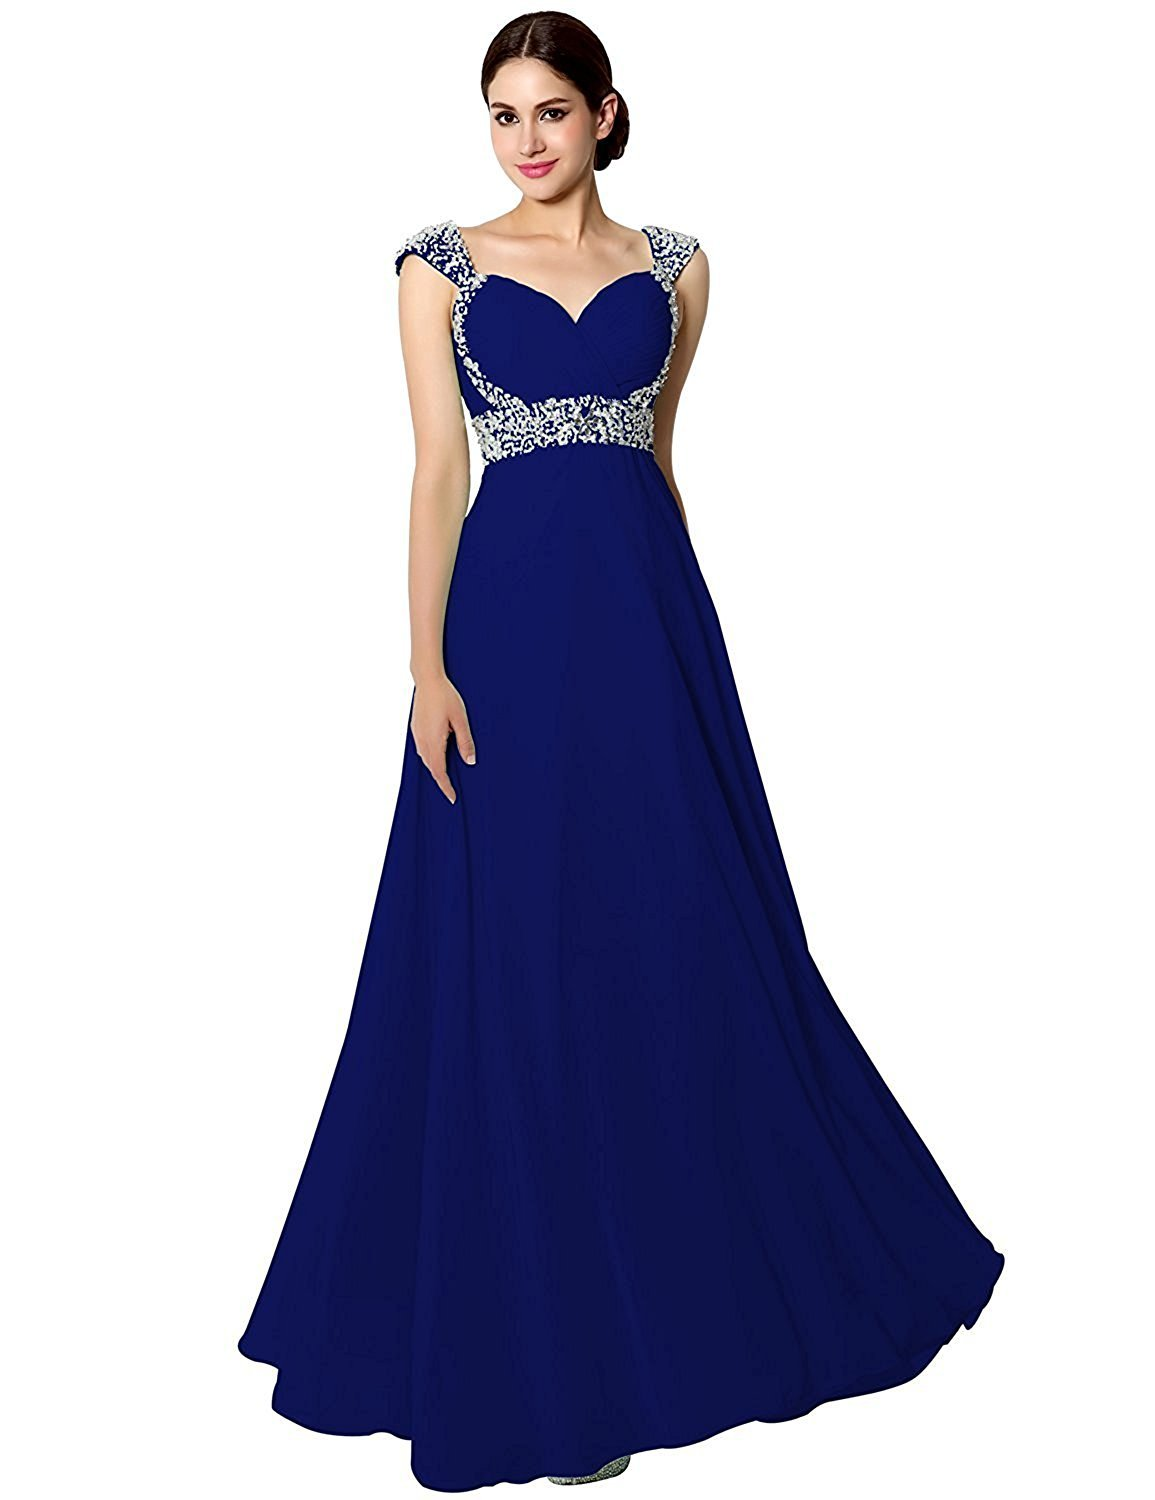 Royal Blue Ball Gown Prom Dress: Amazon.com